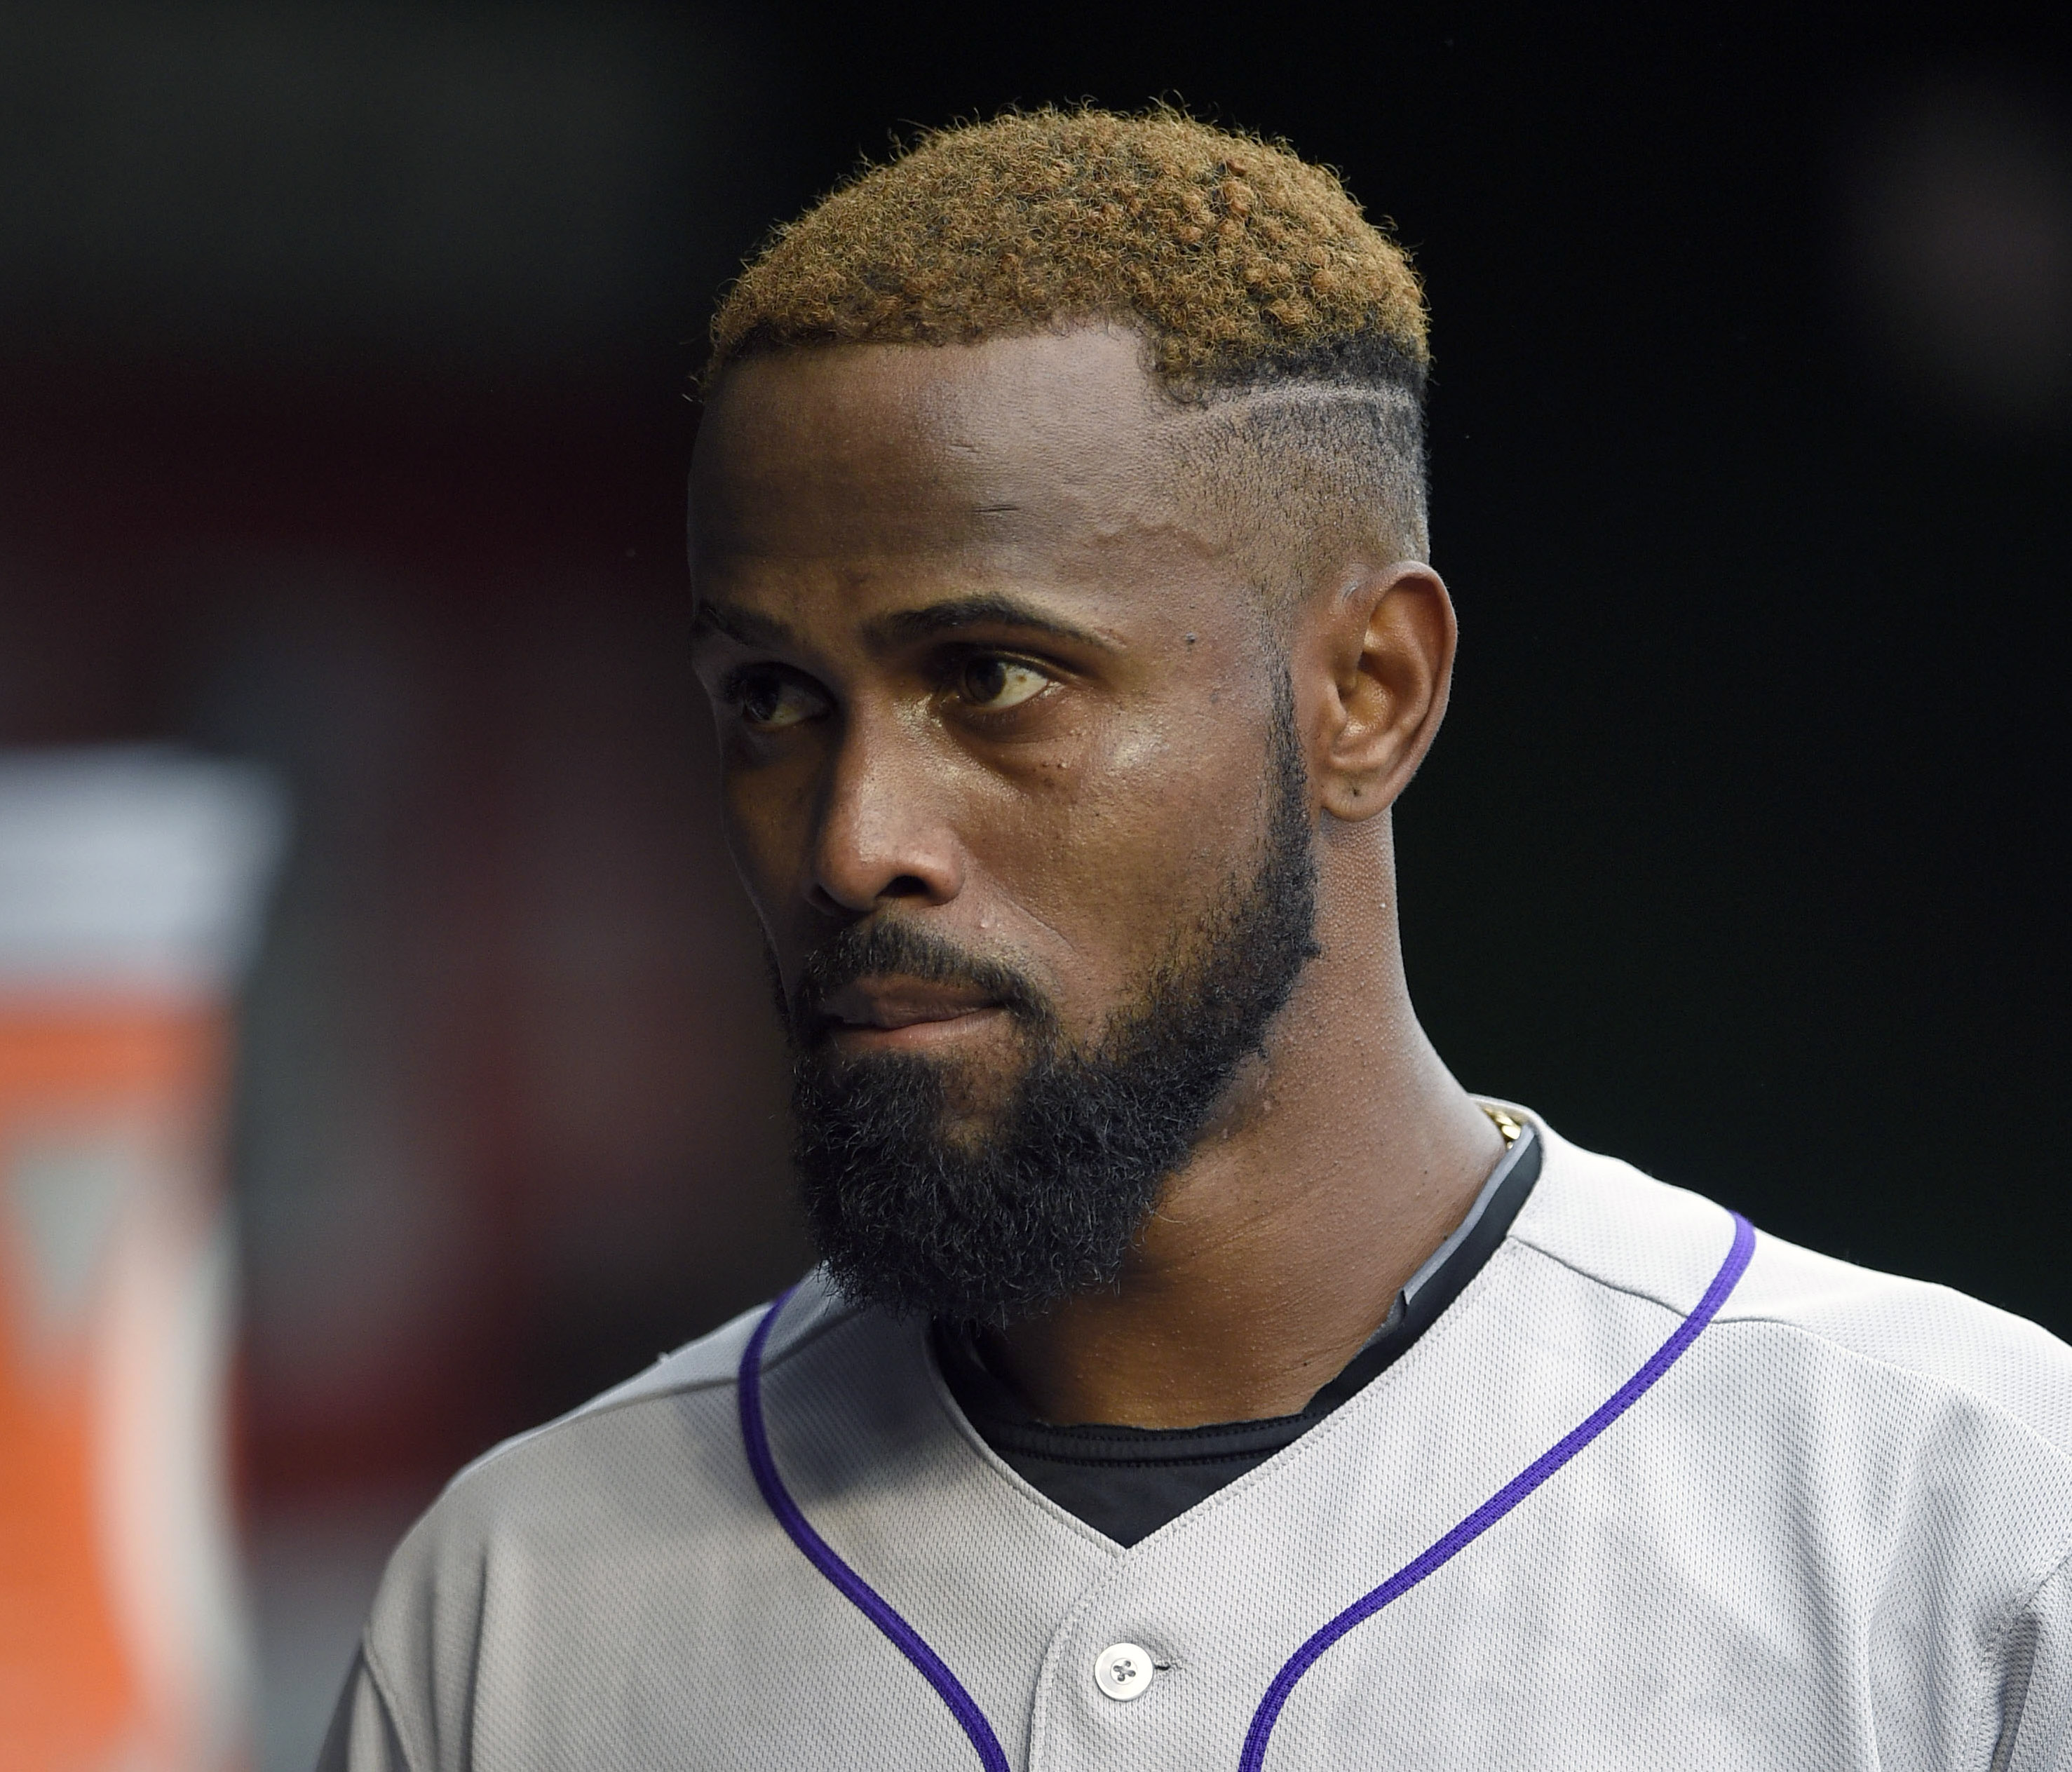 FILE - In this Aug. 7, 2015, file photo, Colorado Rockies shortstop Jose Reyes (7) looks on before a baseball game against the Washington Nationals, in Washington. The Rockies began their exhibition schedule Wednesday, March 2, 2016, facing the possibilit